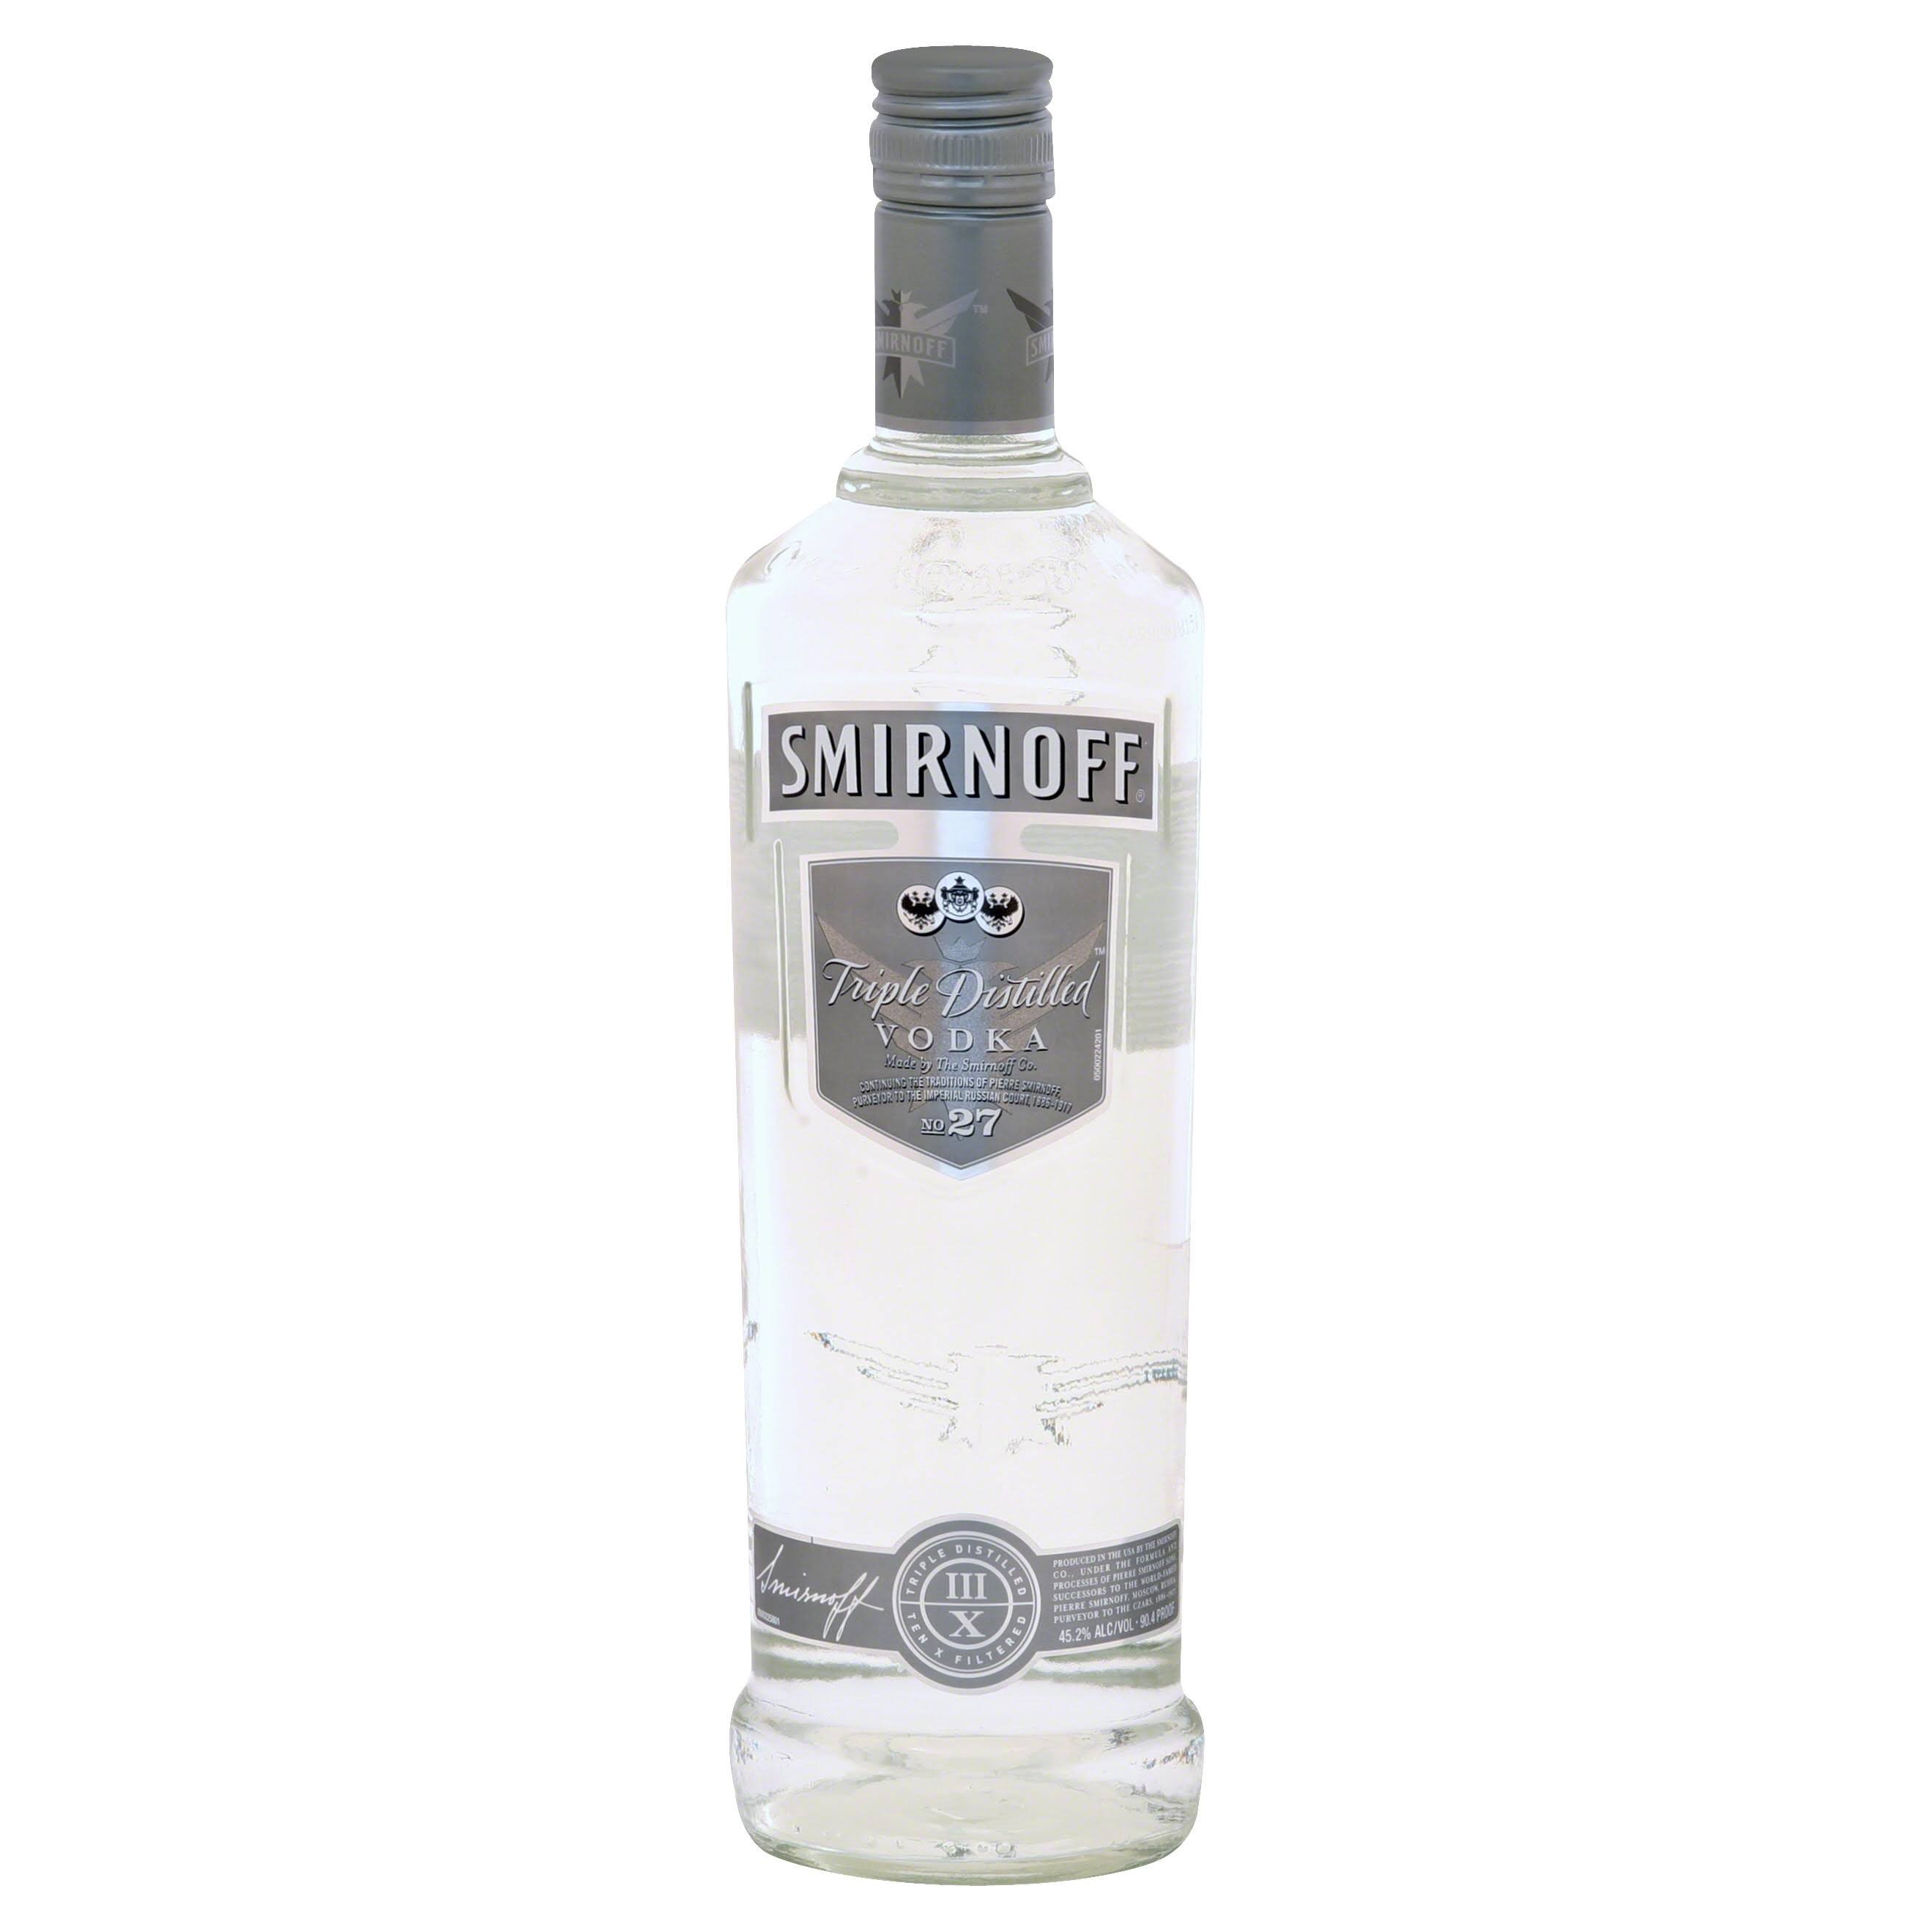 Smirnoff Vodka - Triple Distilled, 750ml